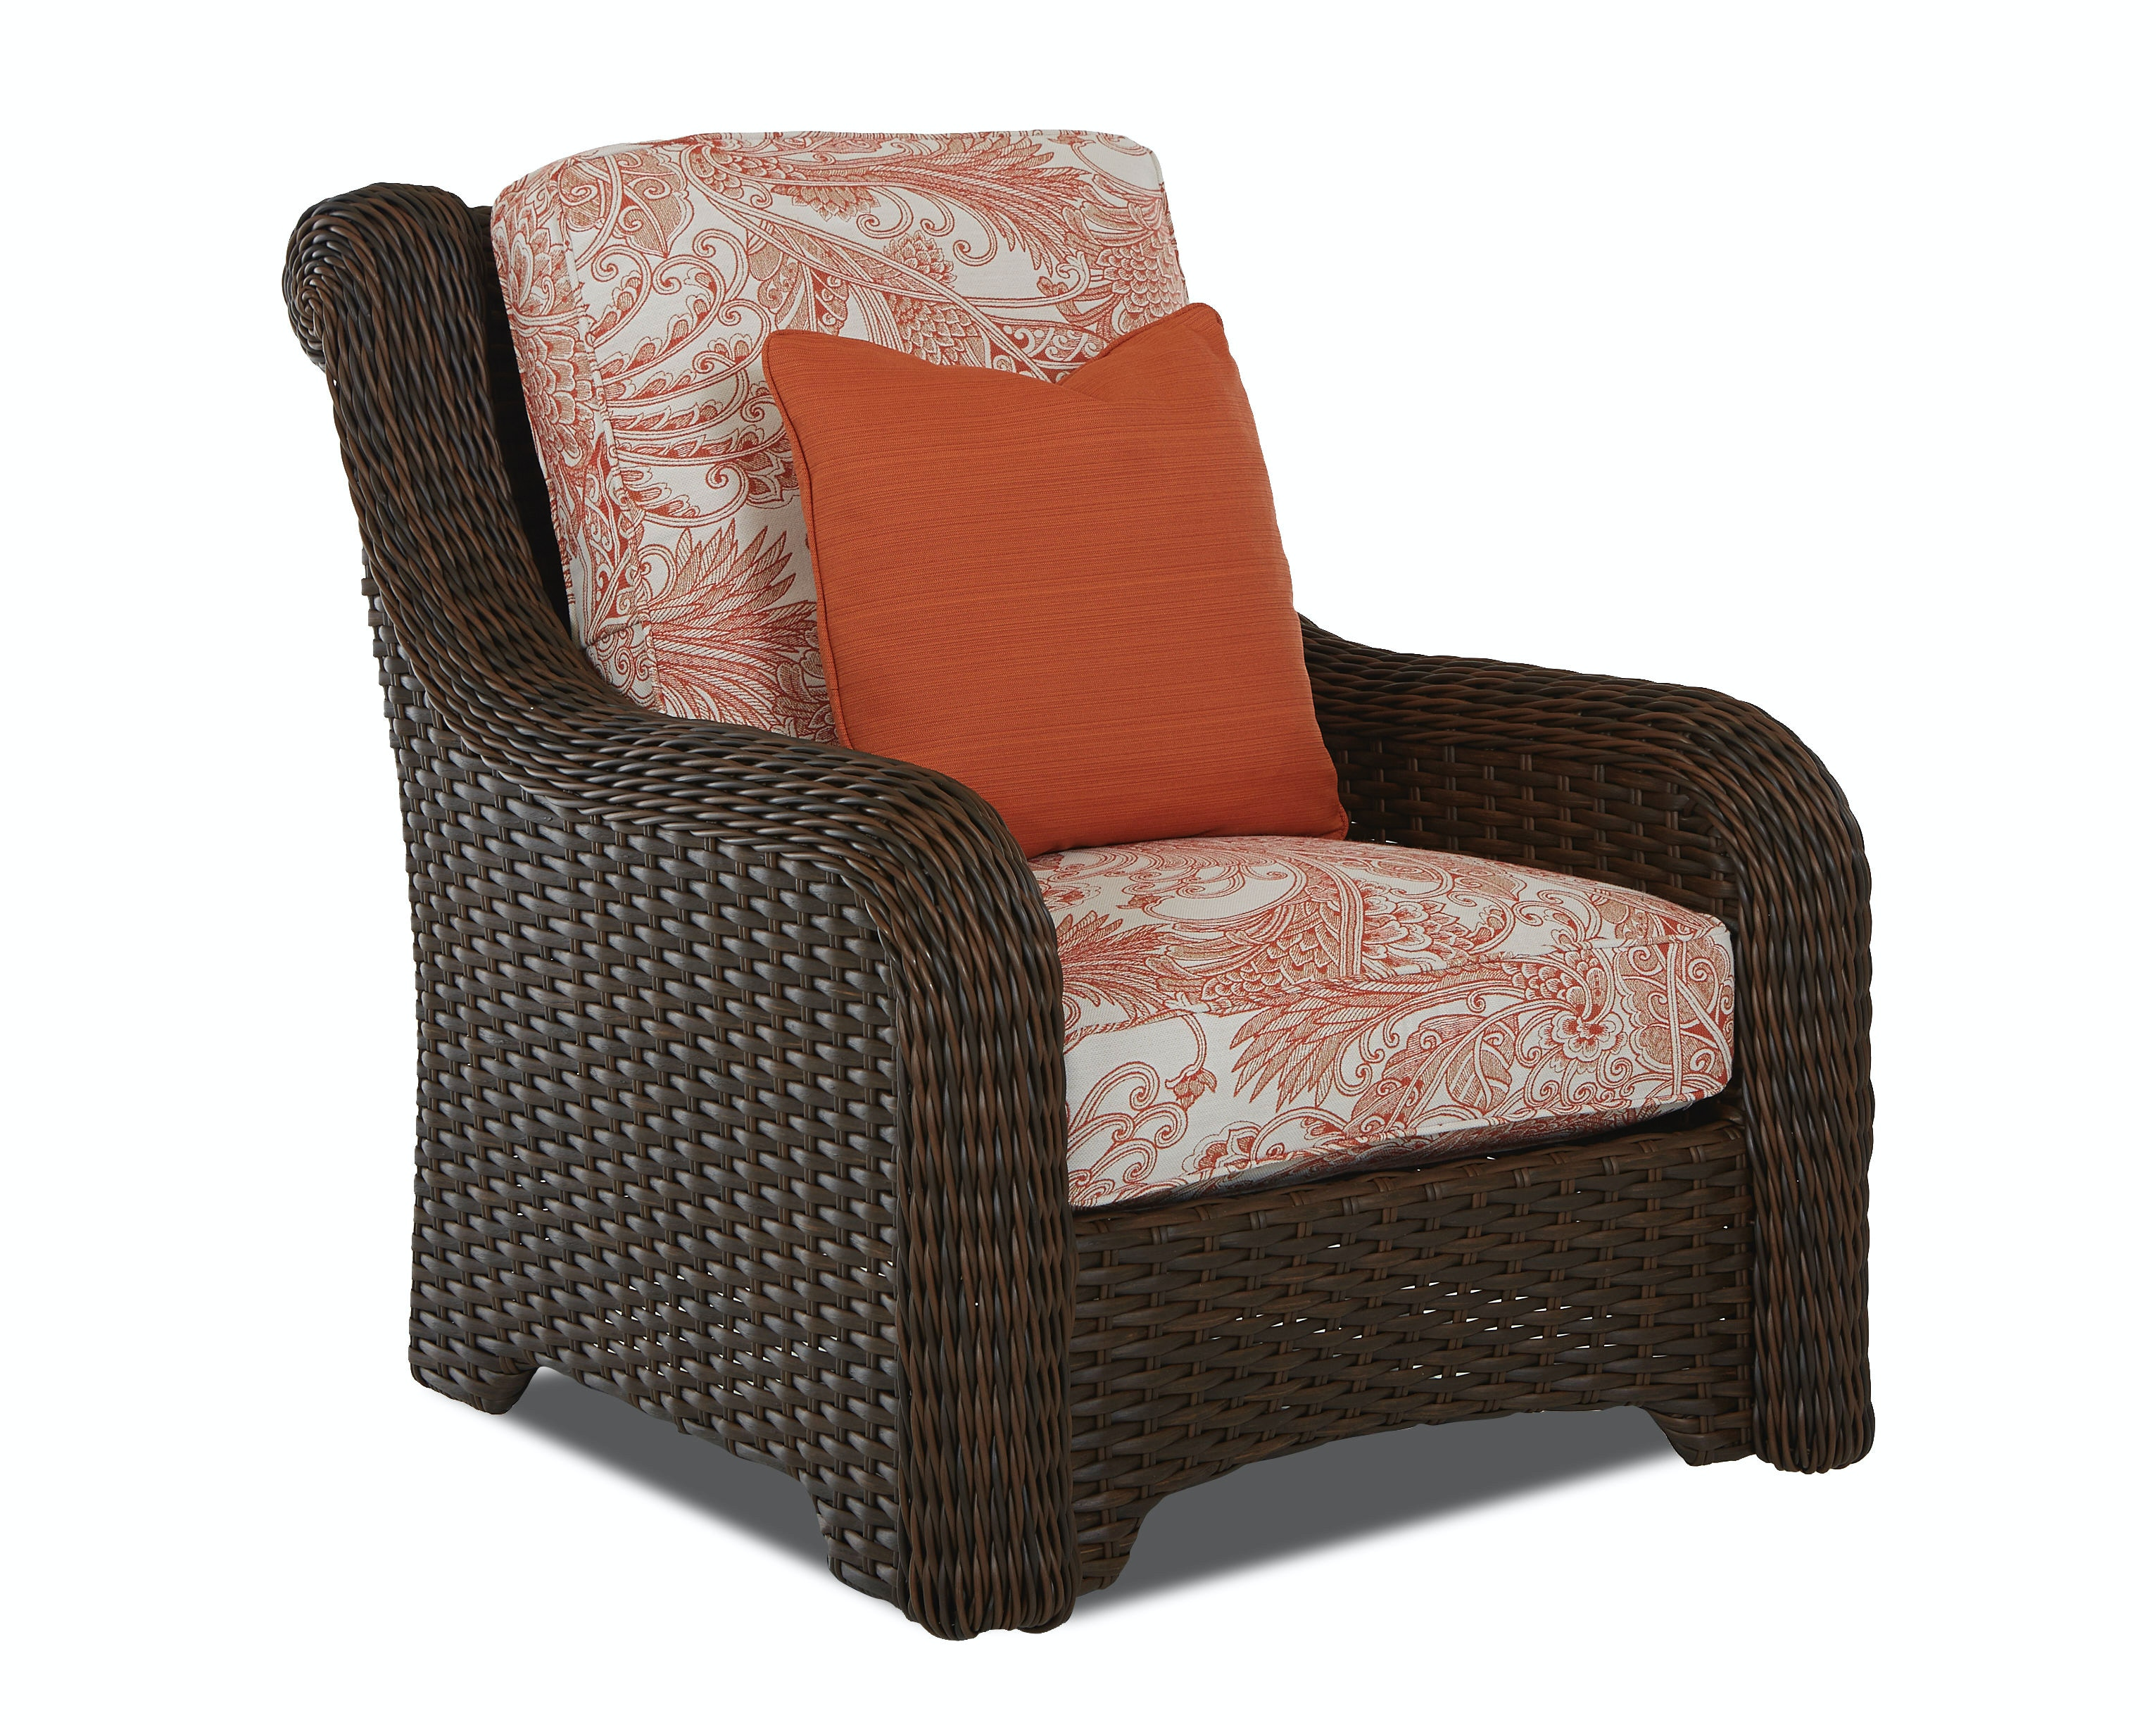 Klaussner Outdoor Laurel Chair W1000 C